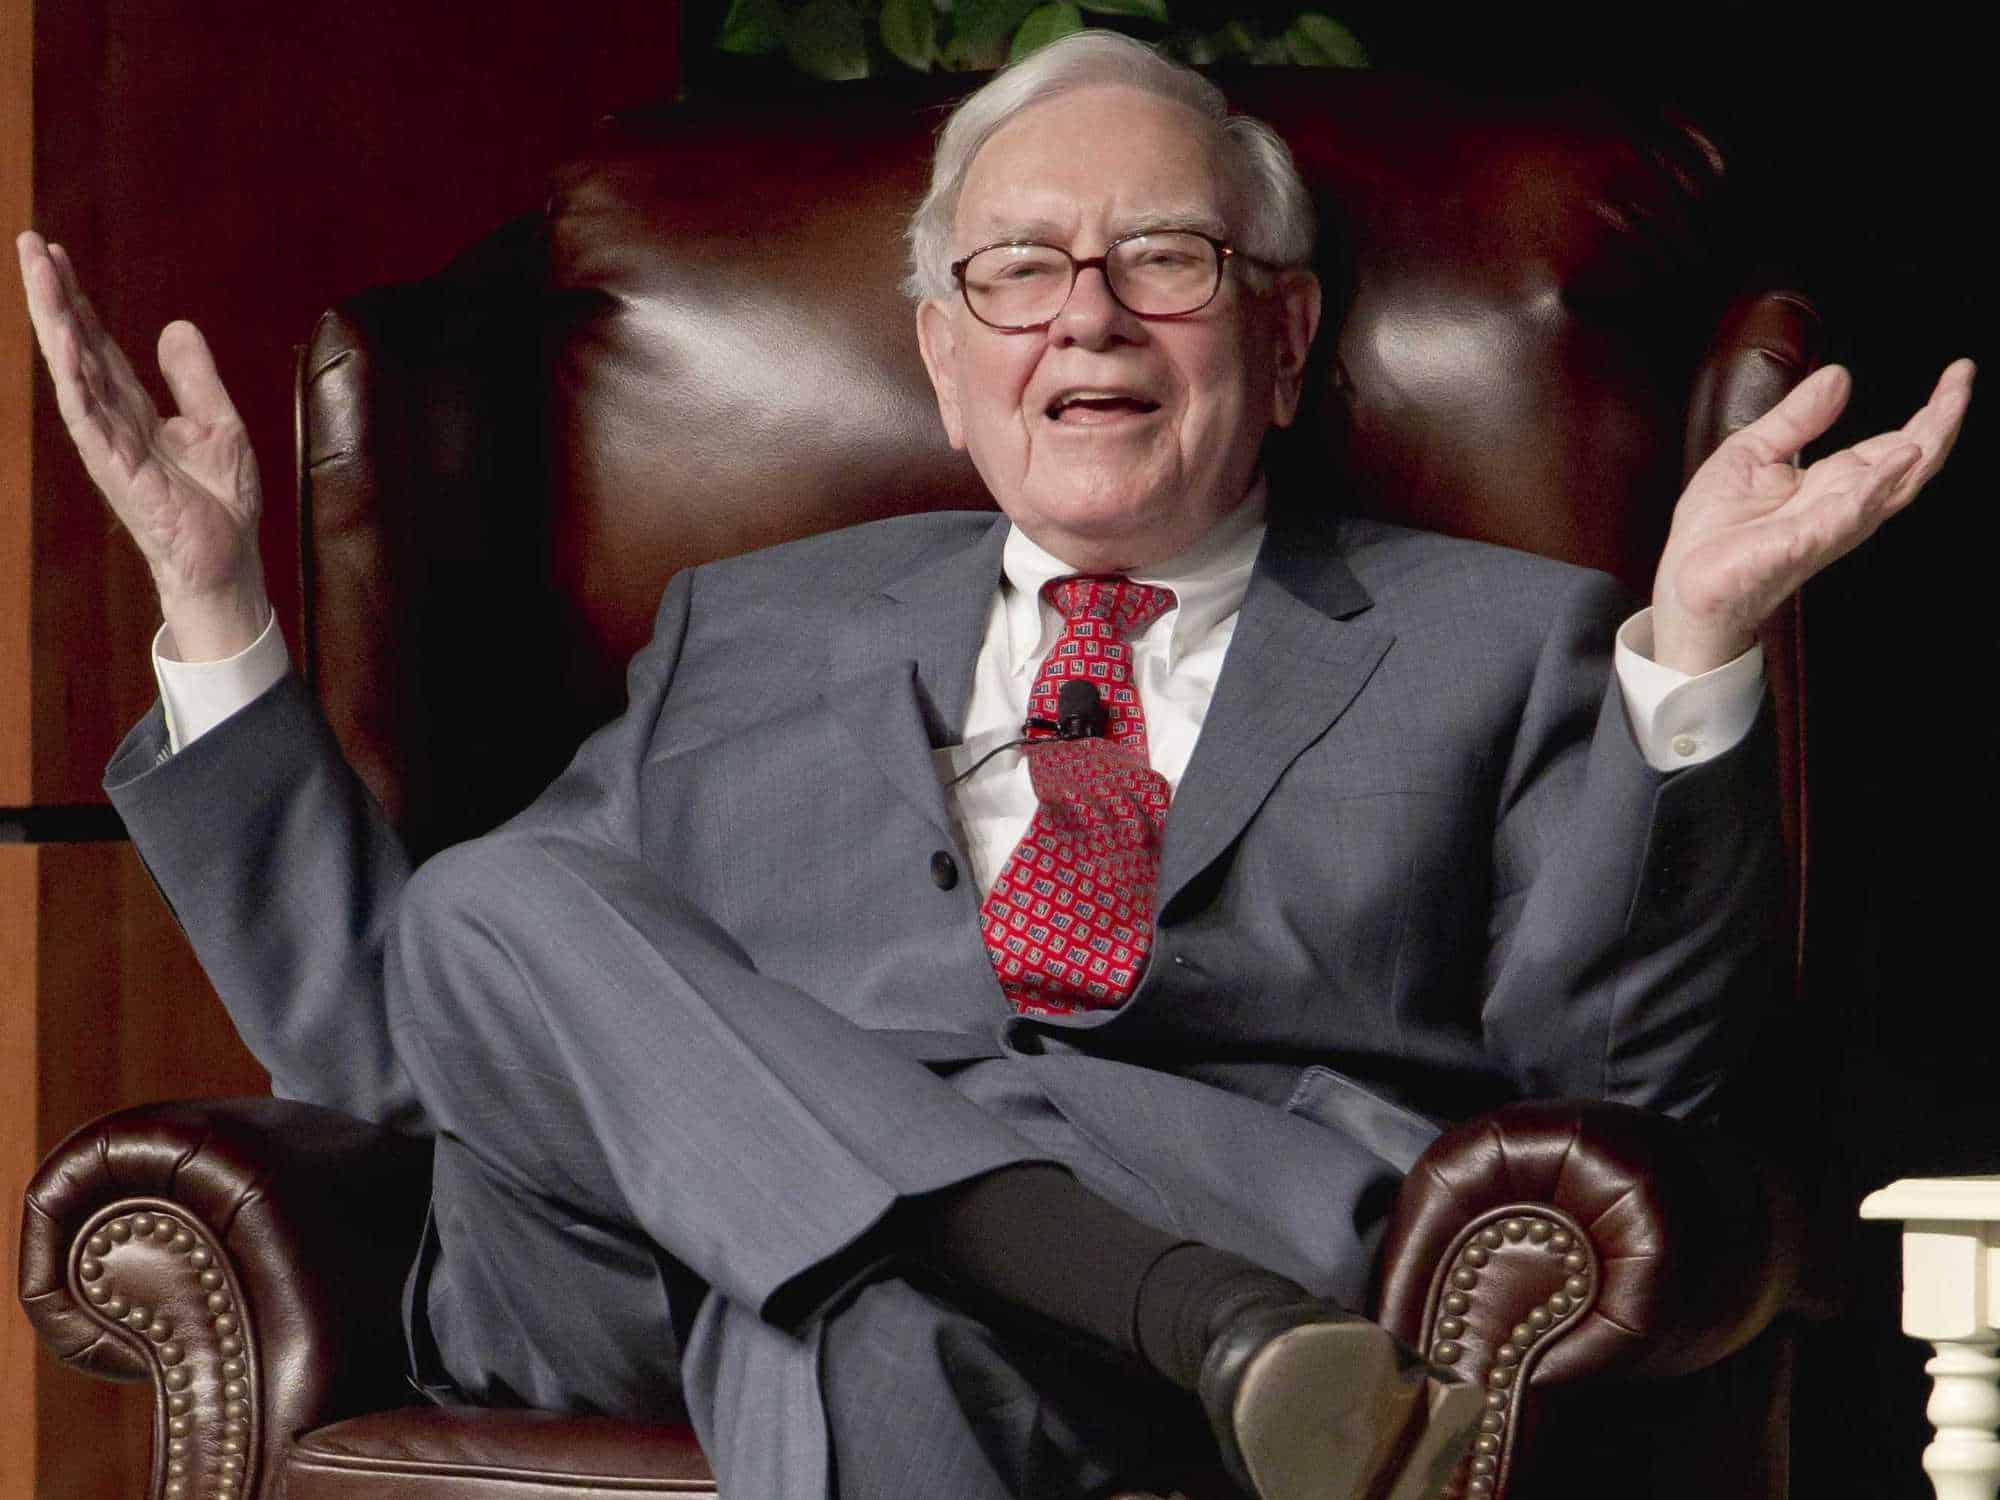 Surprising Past Jobs - Warren Buffett